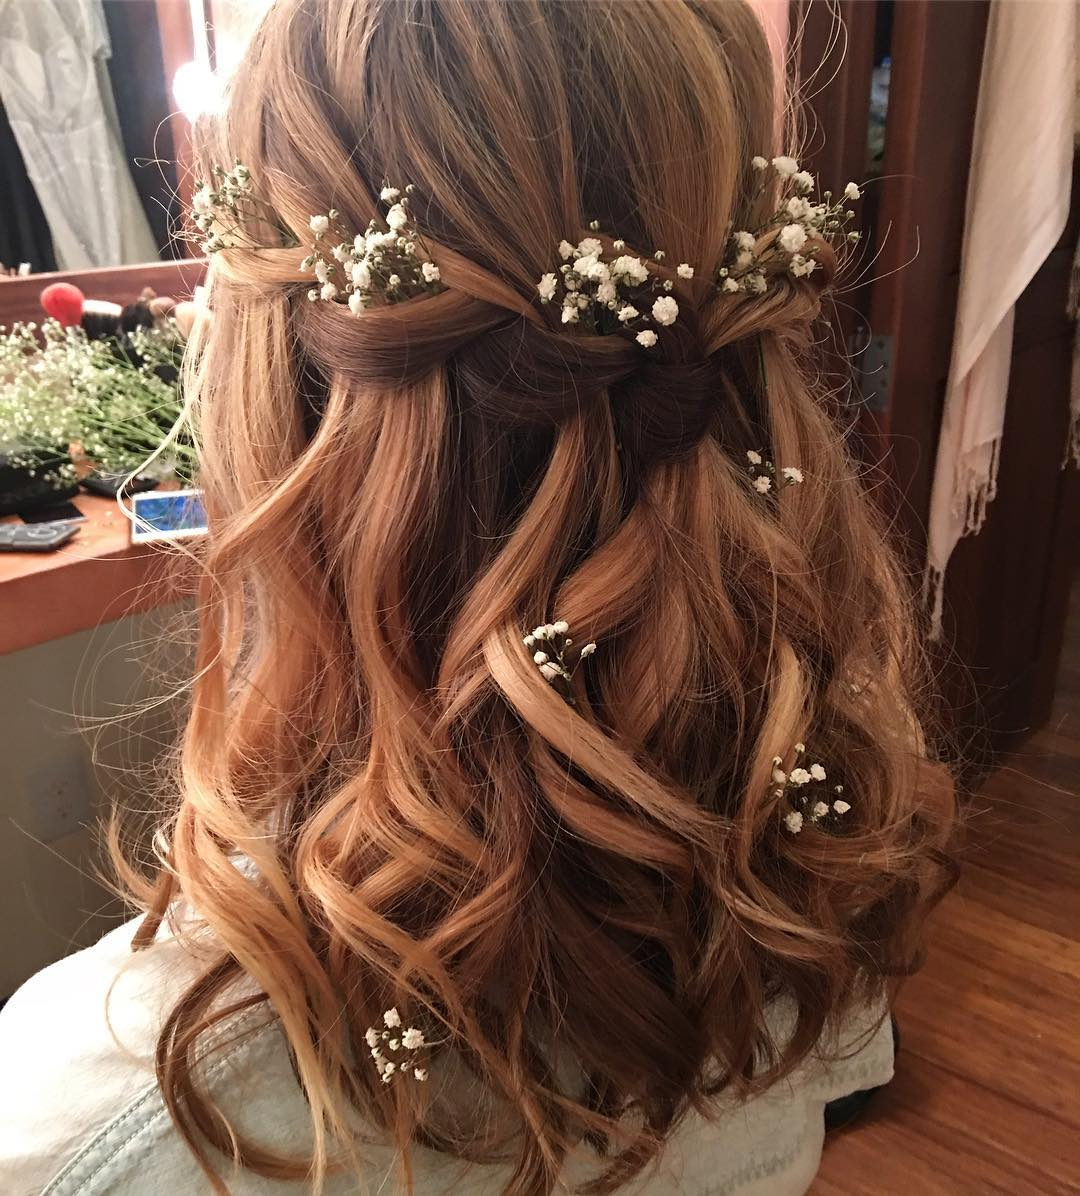 10 Lavish Wedding Hairstyles for Long Hair - Wedding Hairstyle Ideas 2020